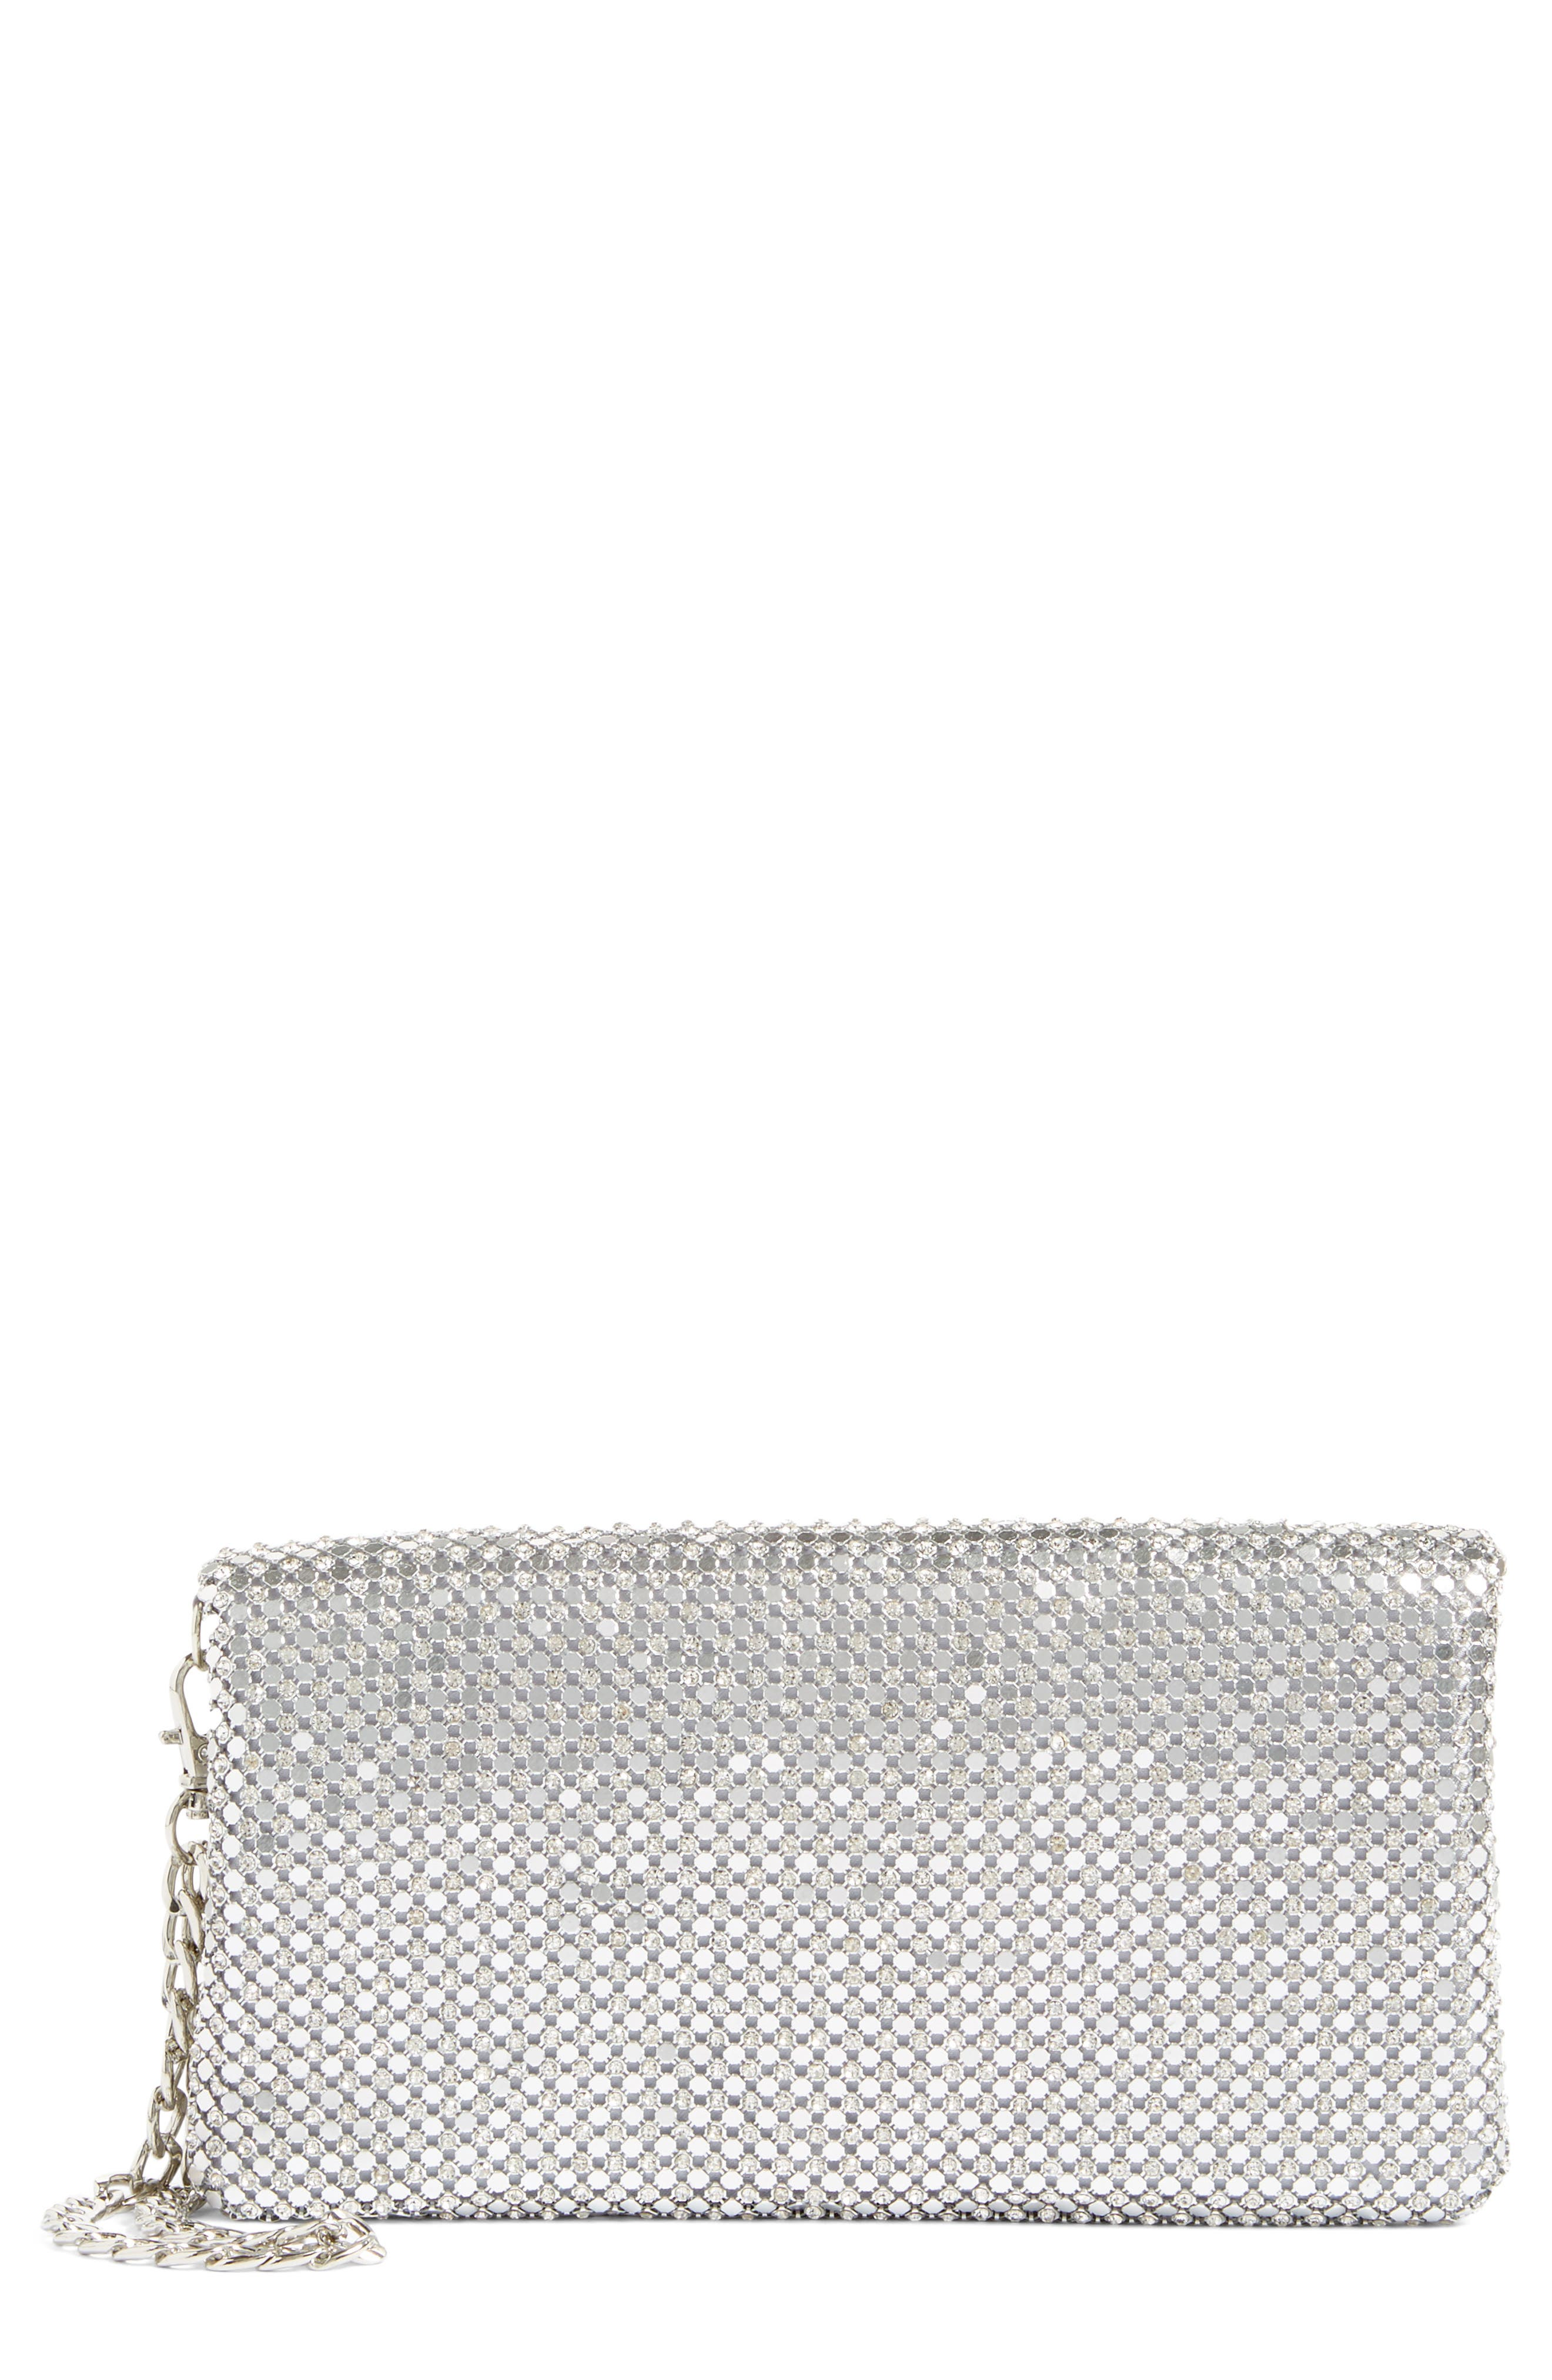 Crystal Mesh Foldover Clutch,                         Main,                         color, Silver